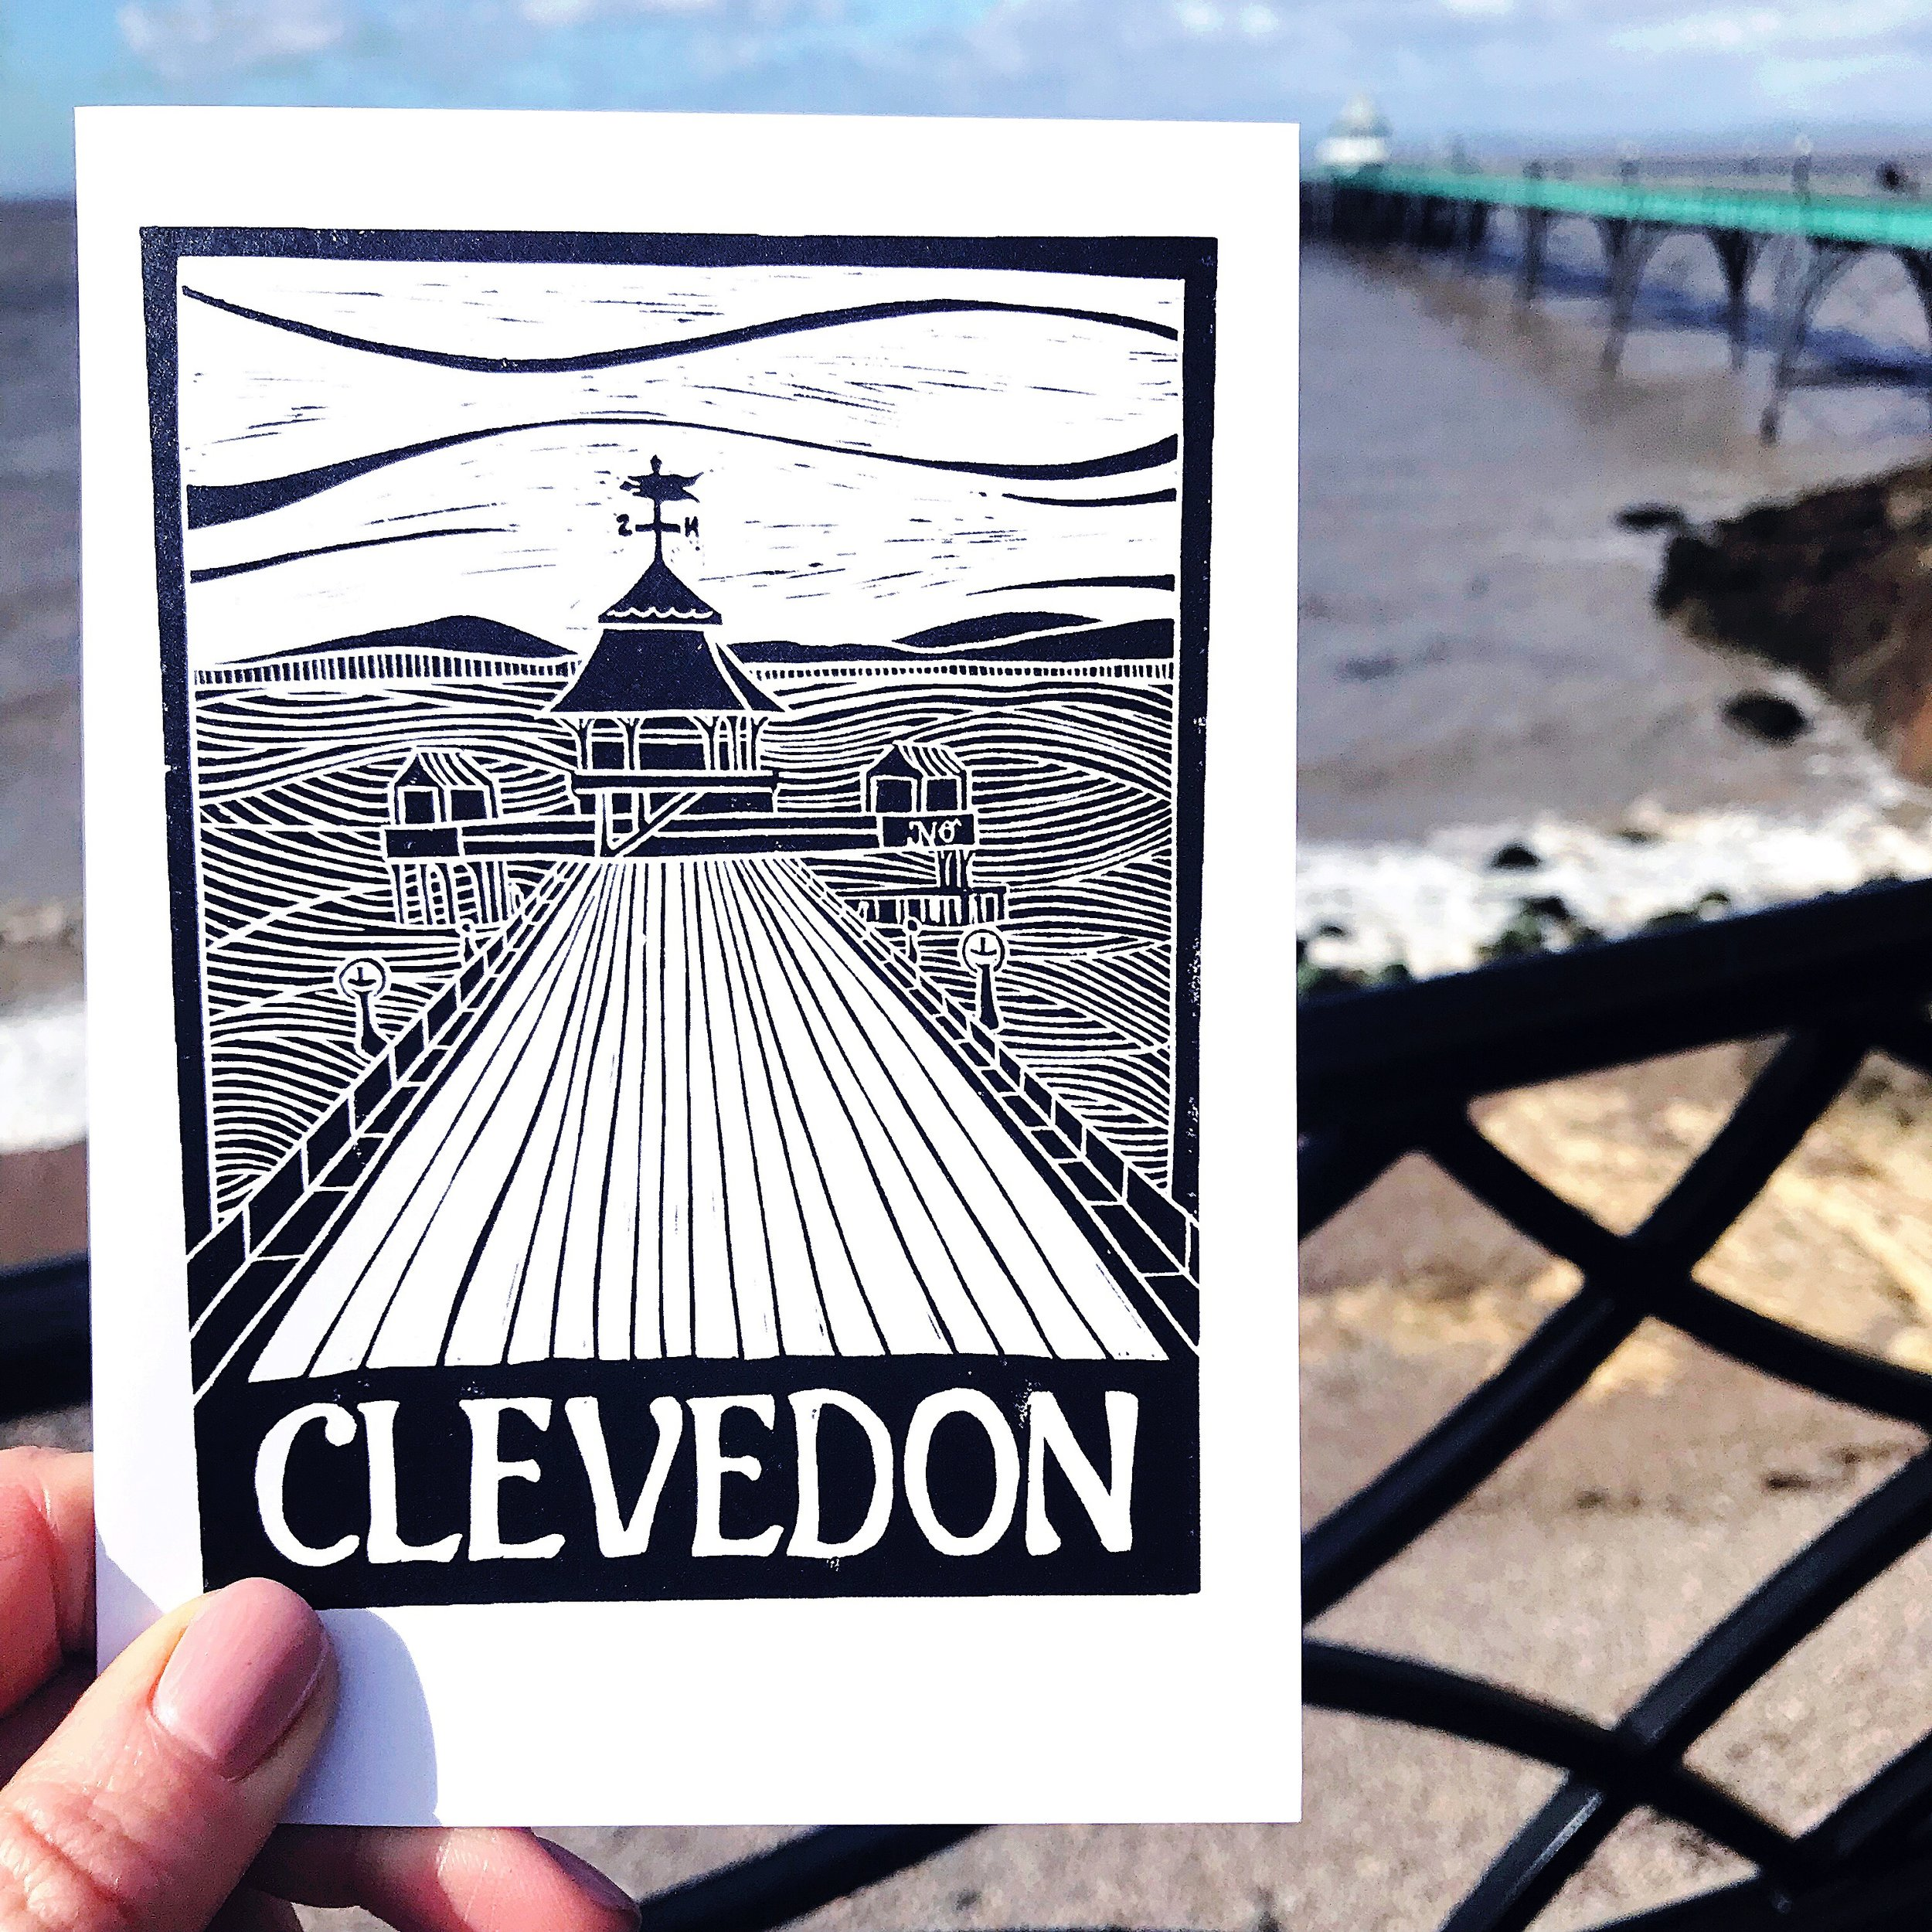 clevedon-pier-seaside-town-british-beach-print.jpg